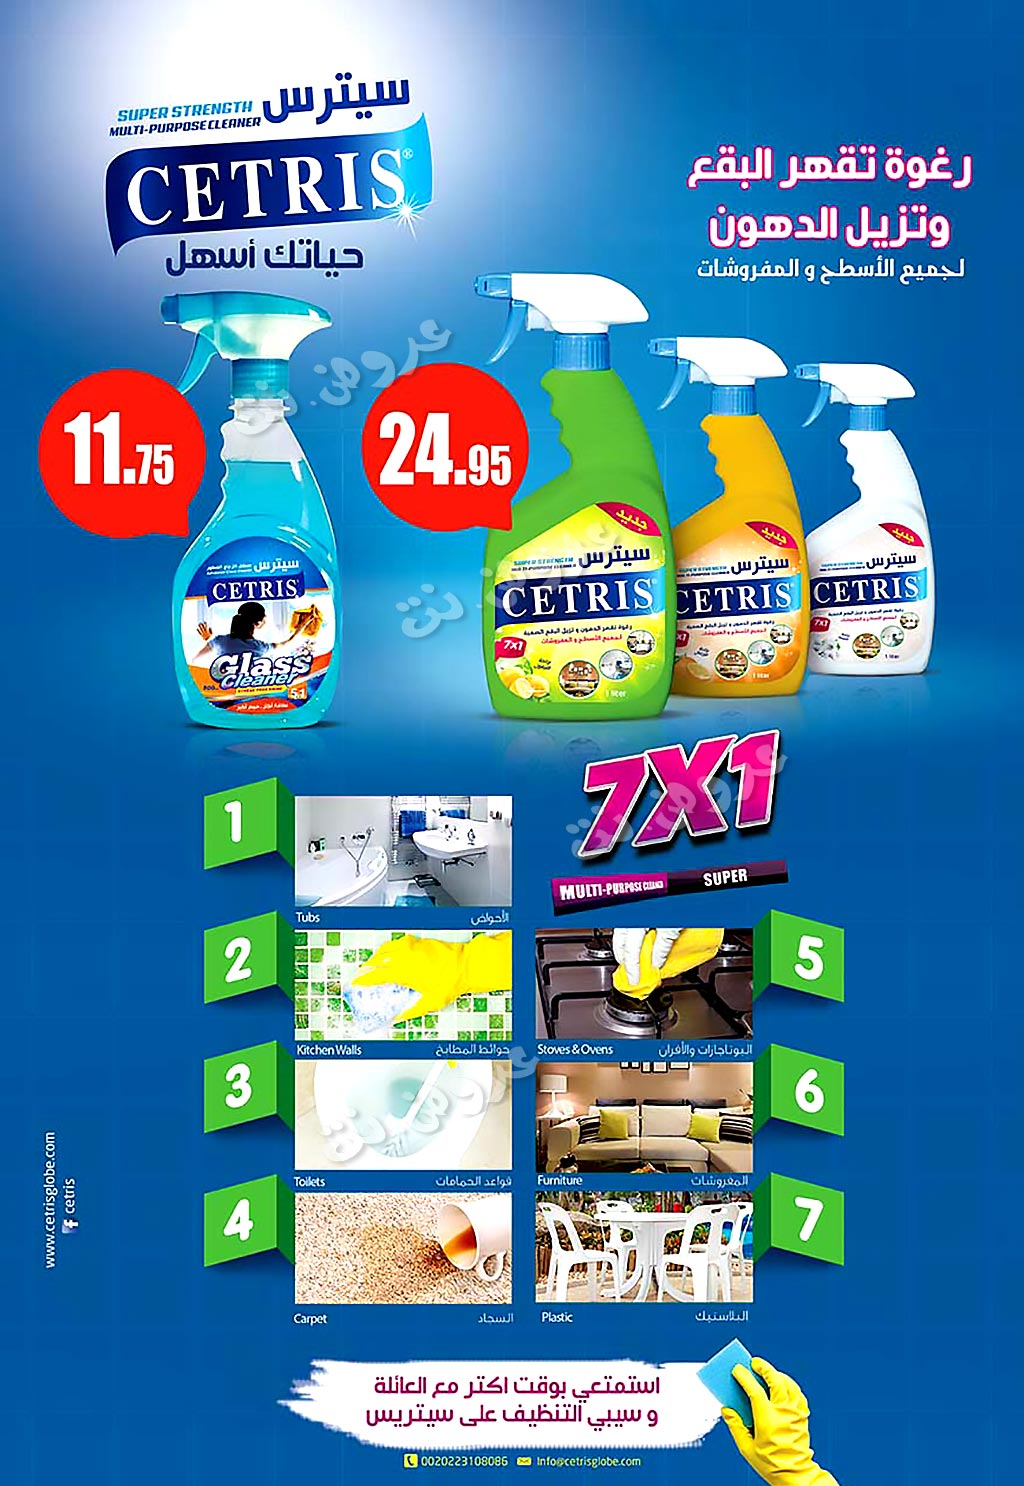 ragab-sons offers from 14aug to 27aug 2019 page number 18 عروض أولاد رجب من 14 أغسطس حتى 27 أغسطس 2019 صفحة رقم 18